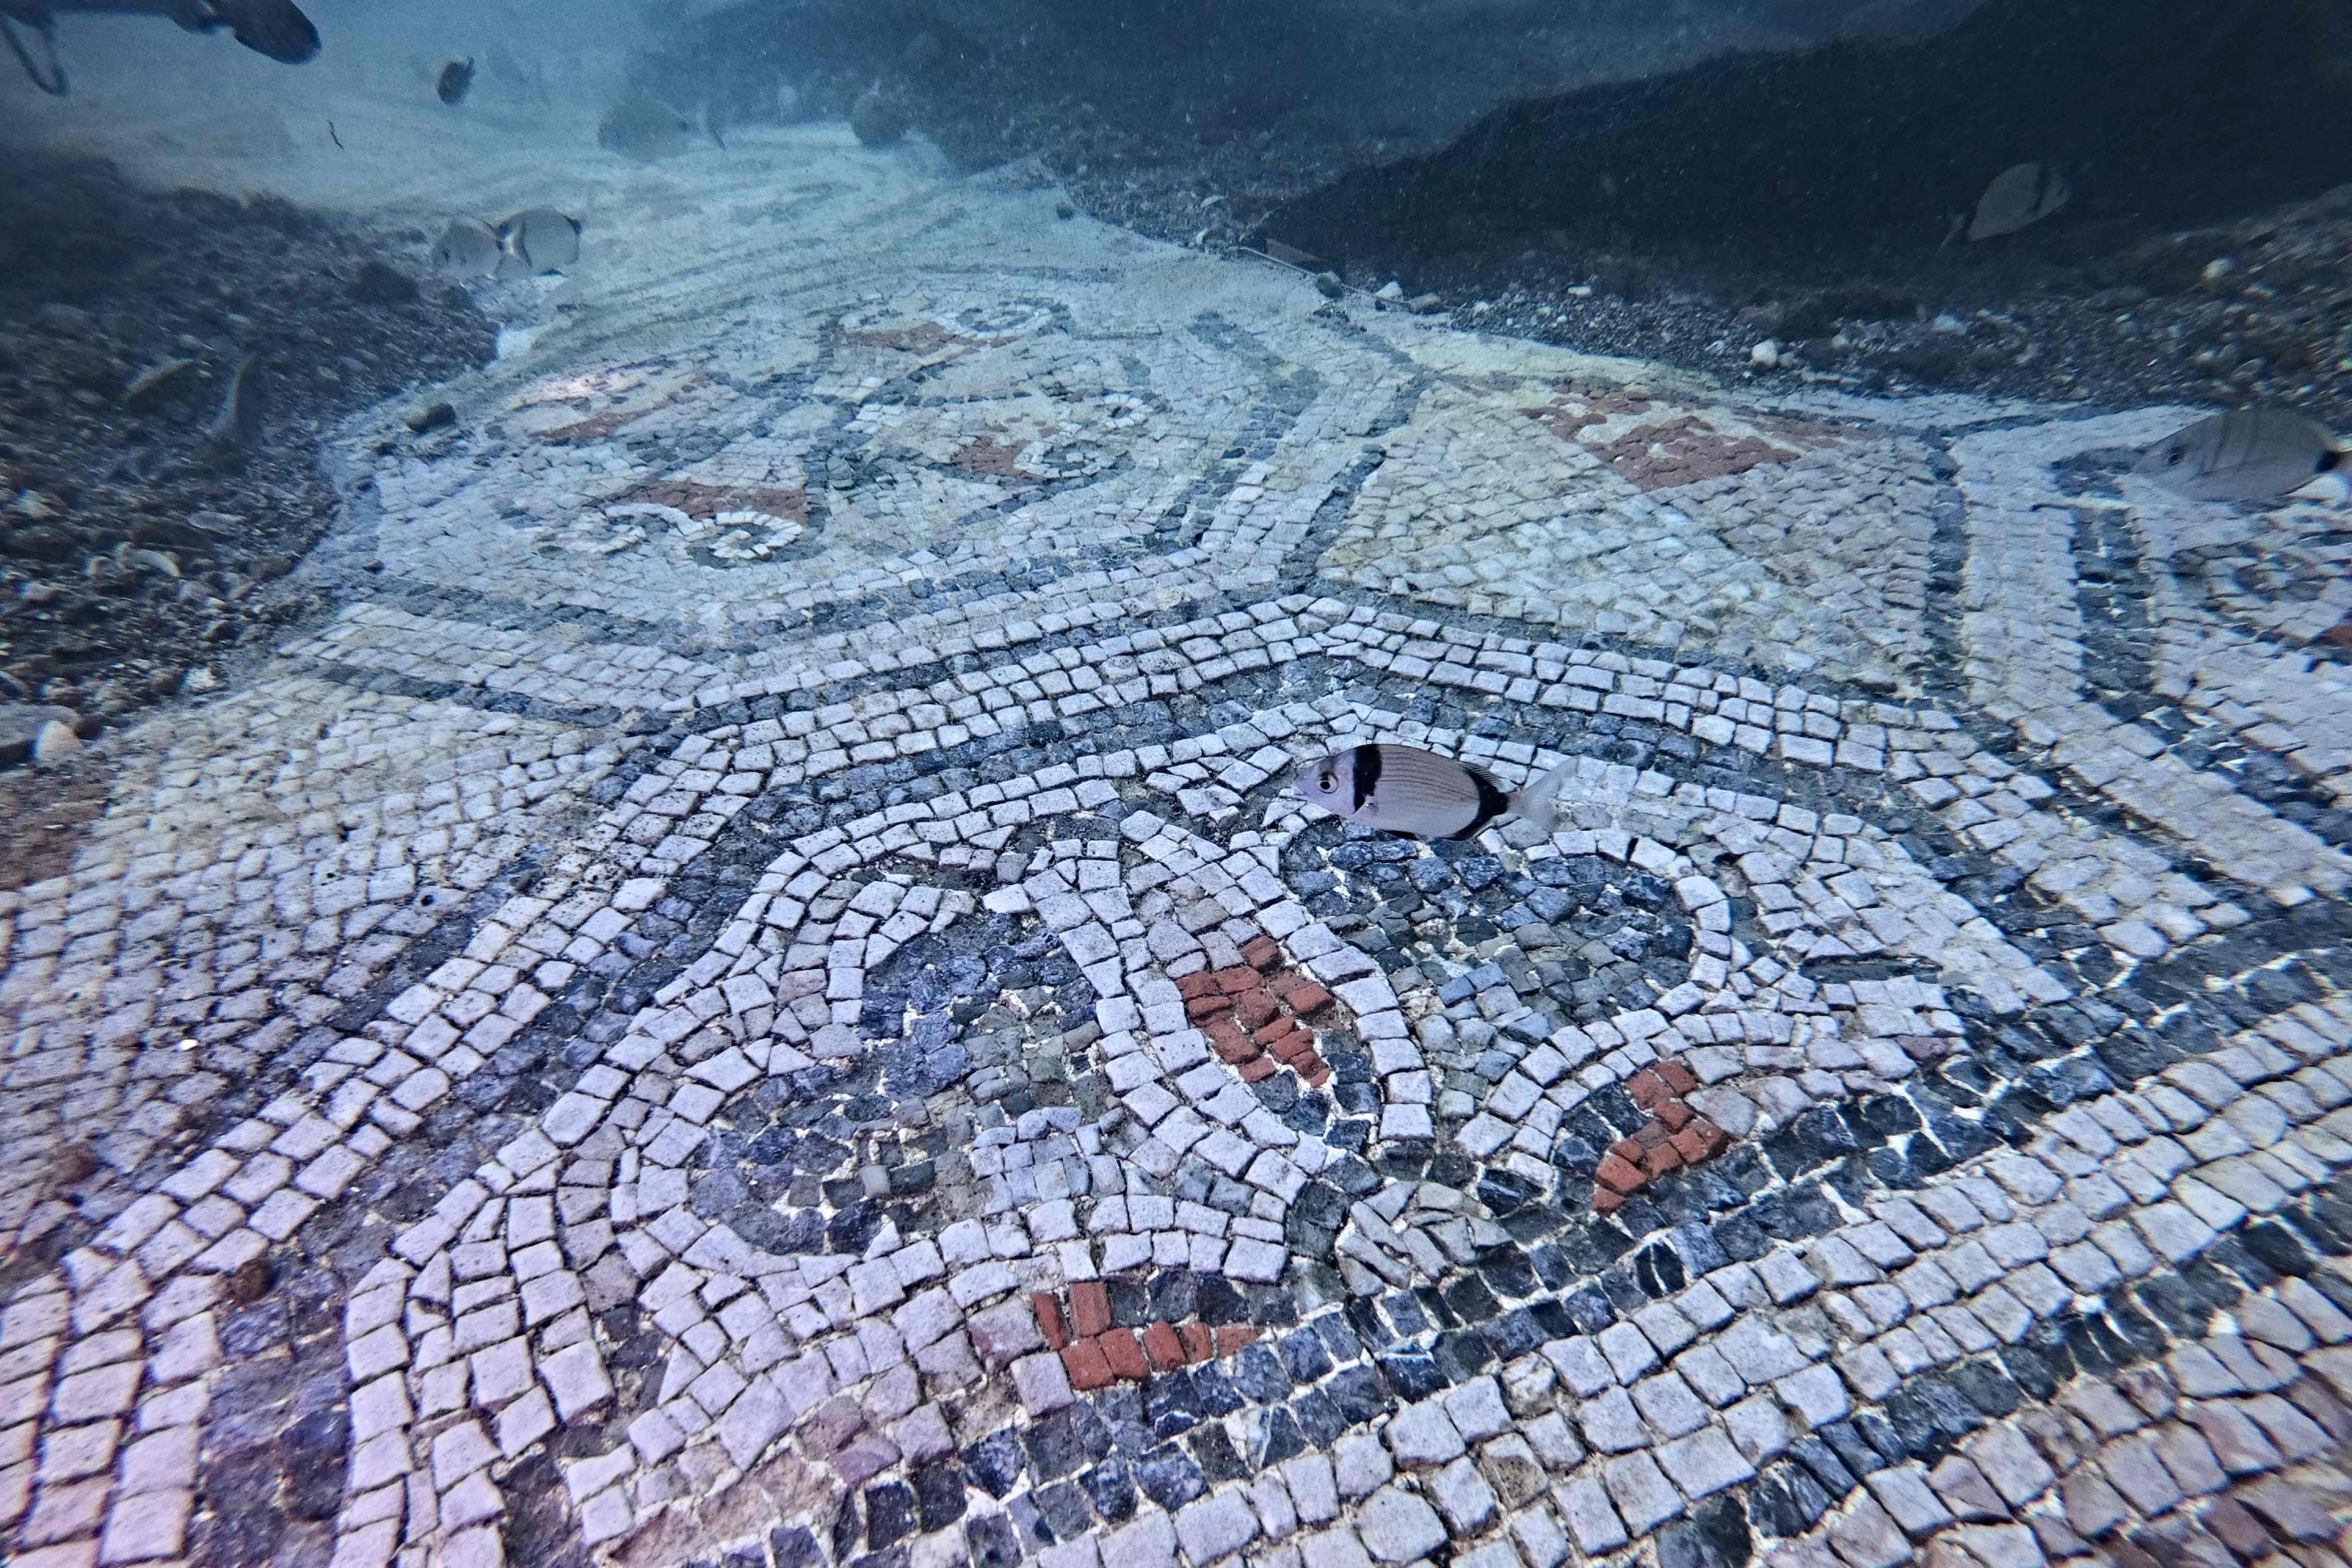 A mosaic from Terme del Lacus,in the submerged ancient Roman city of Baiae, Pozzuoli near Naples, Italy, Aug. 18, 2021. (AFP Photo)